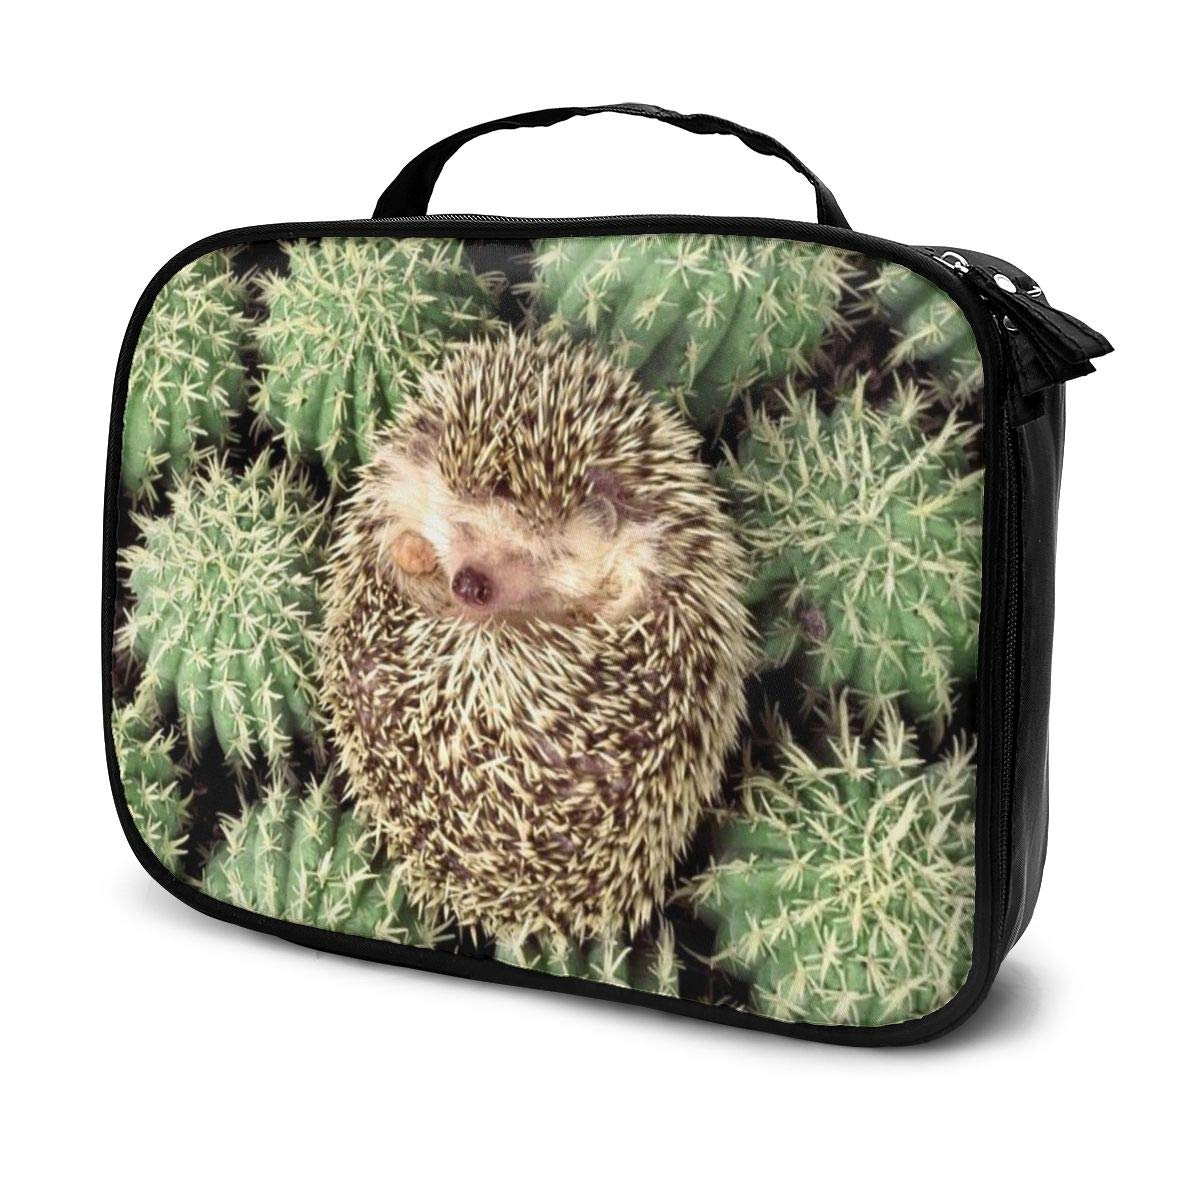 Travel Makeup Bag, Cactus And Hedgehog Capacity Zippered Organizer Cosmetic Bag With Top Handle, Portable Storage Bag For Women